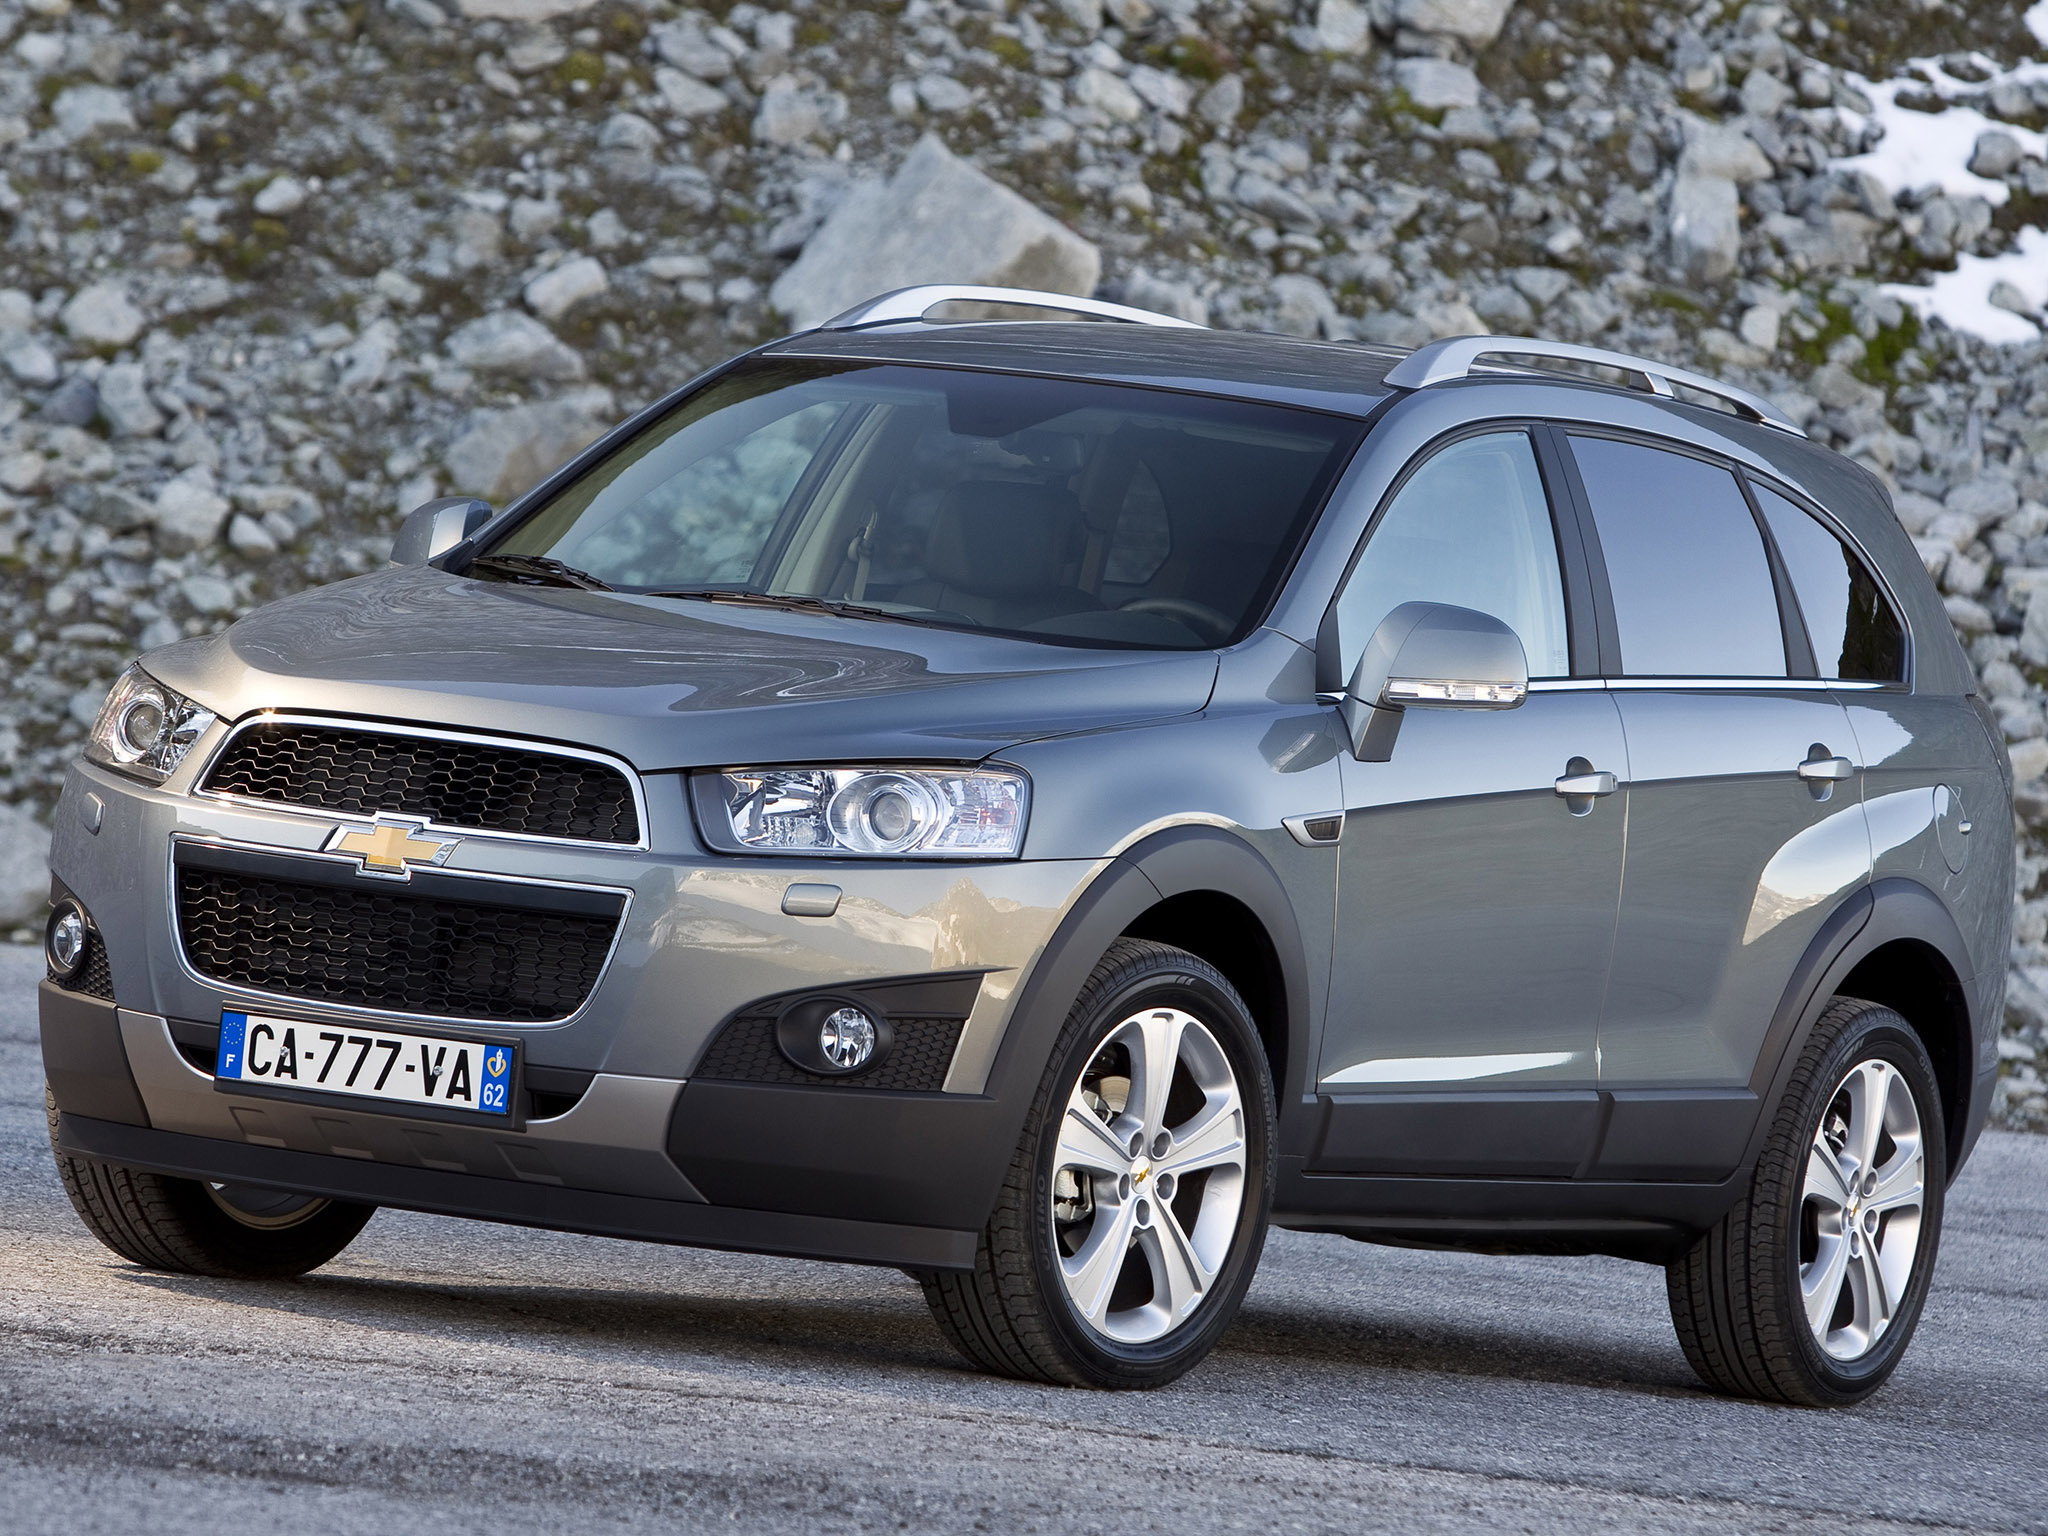 chevrolet captiva 2010 chevrolet captiva 2010 photo 20 car in pictures car photo gallery. Black Bedroom Furniture Sets. Home Design Ideas